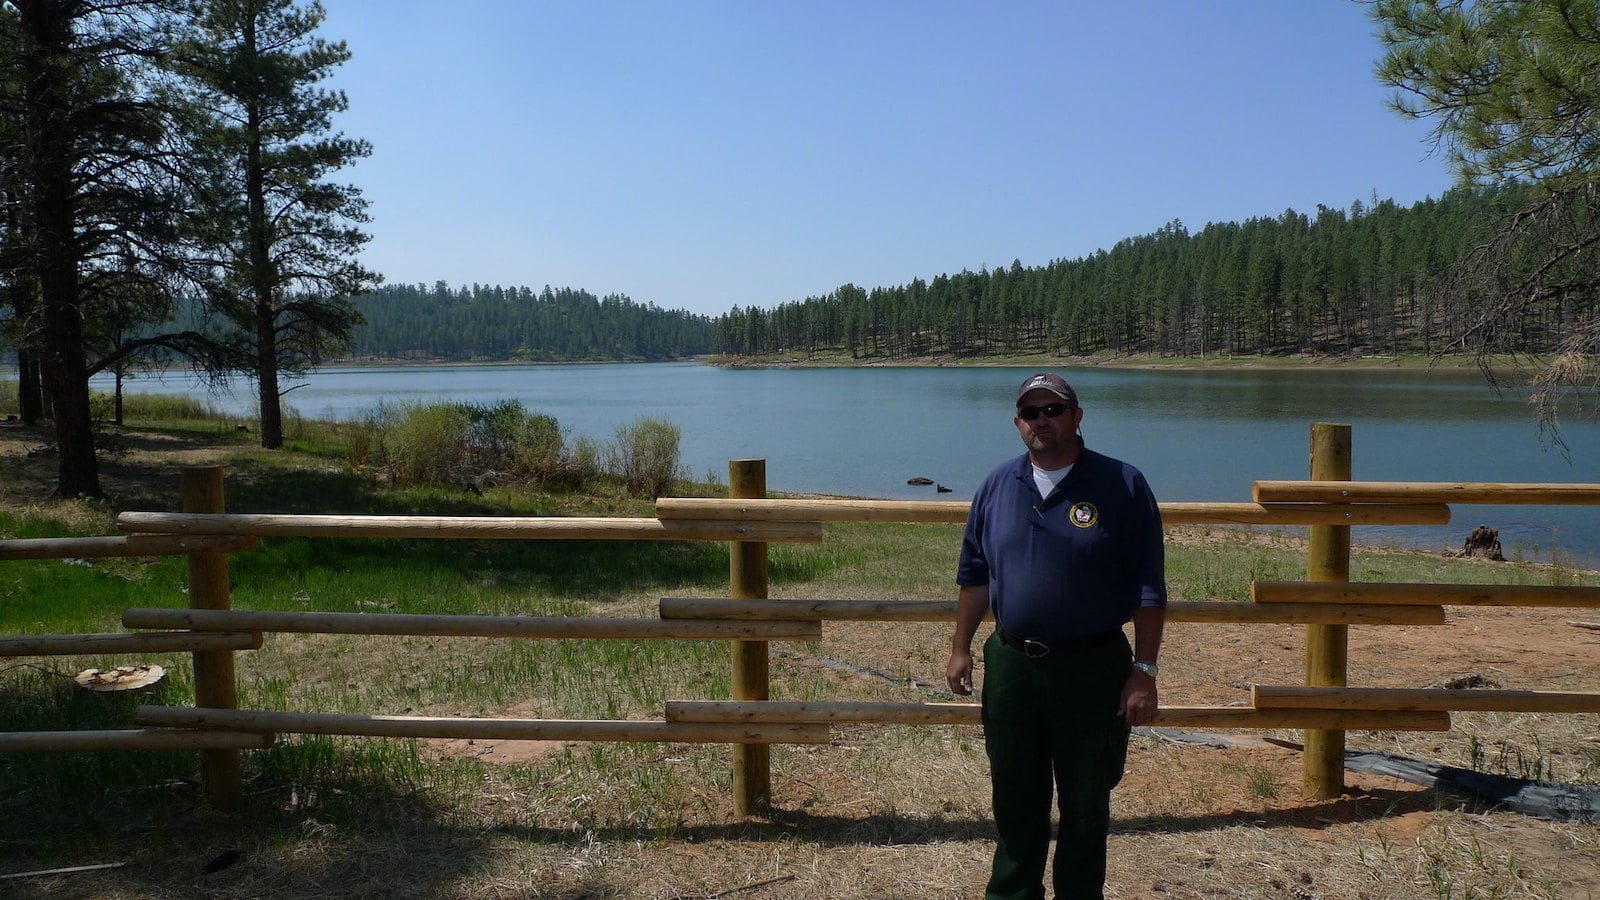 Image of a man at the Buckeye Reservoir in Paradox, Colorado